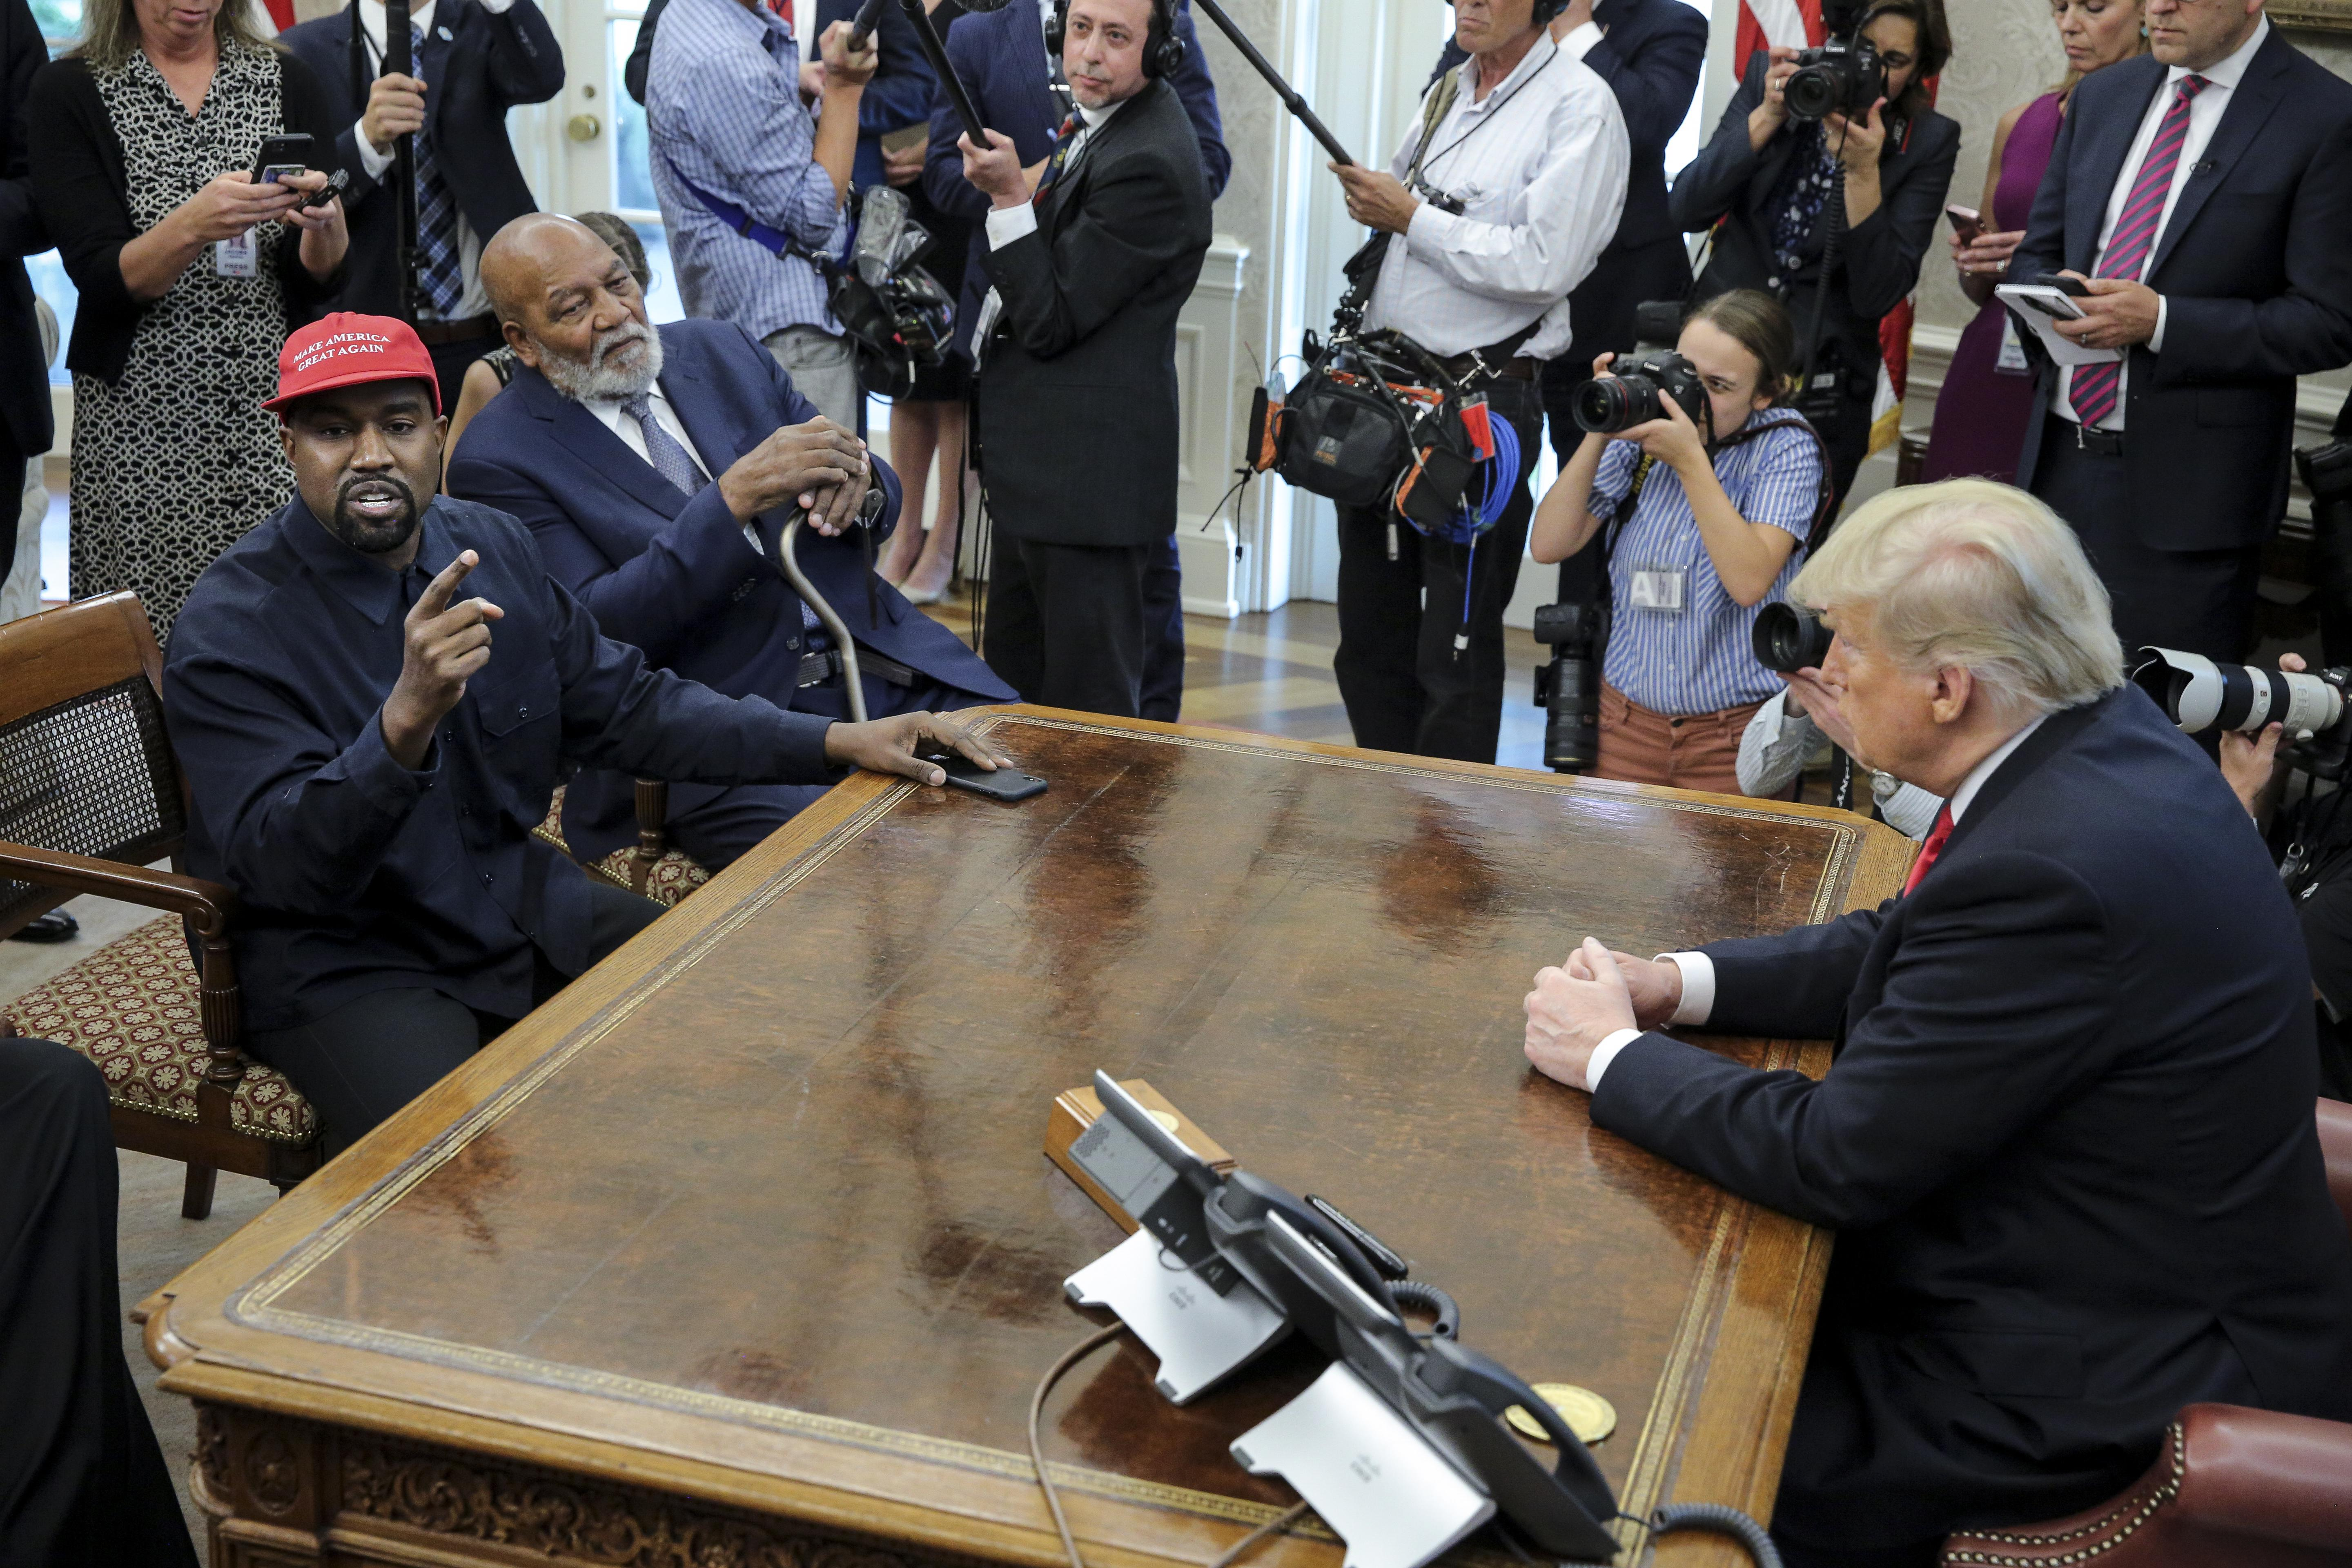 Kanye West and Donald Trump in the Oval Office.